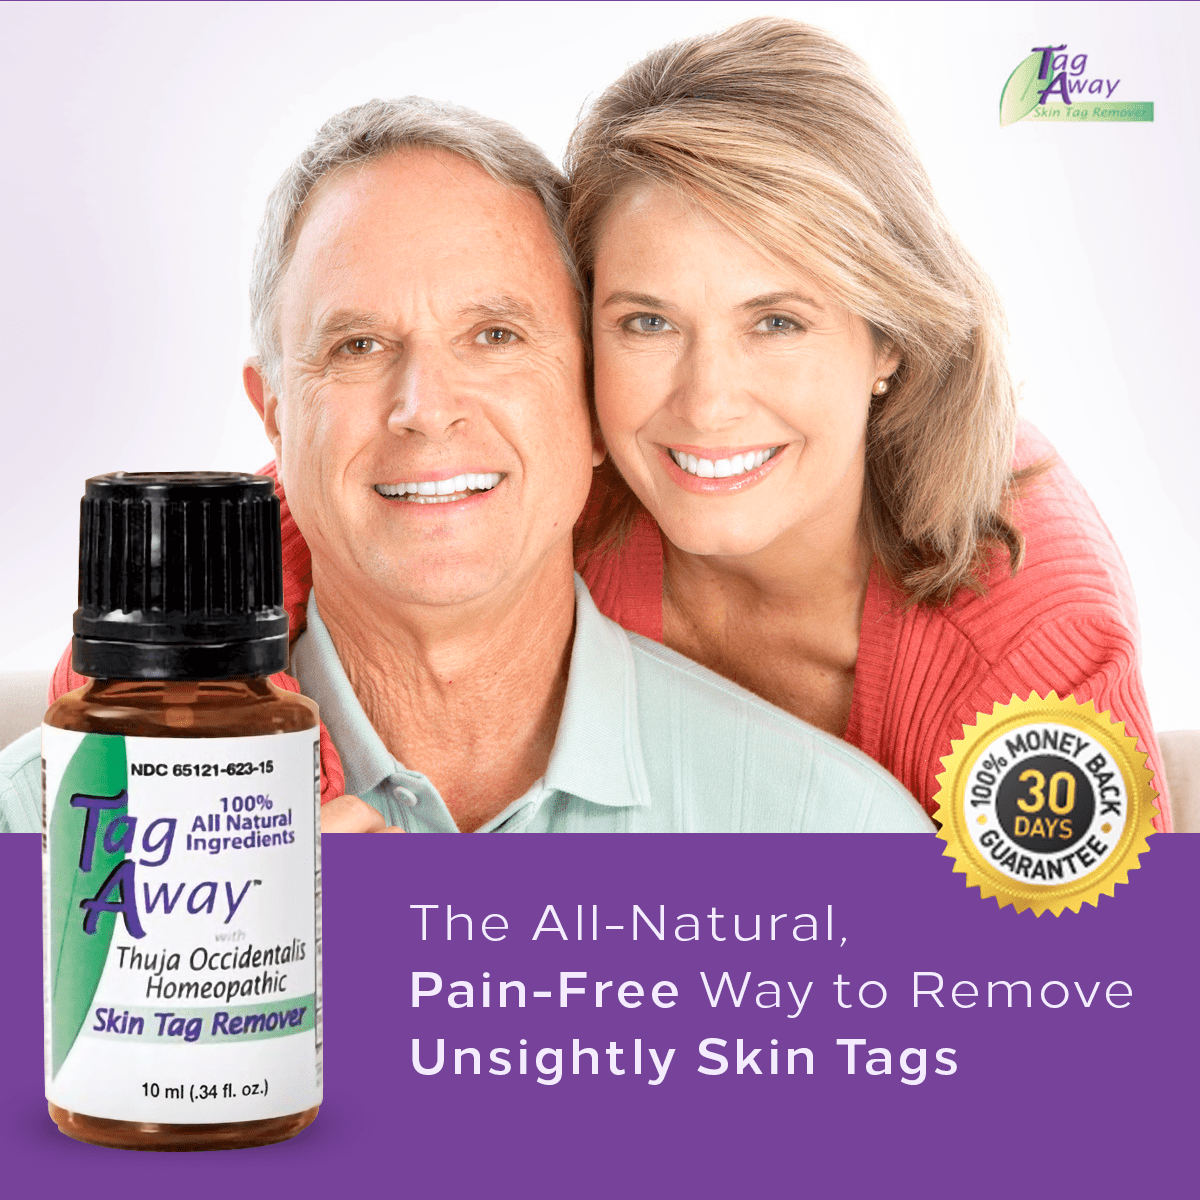 Tag Away Skin Tag Remover Fast Acting Natural Homeopath Topical Remedy For All Skin Types 34 Fl Oz Walmart Com Walmart Com